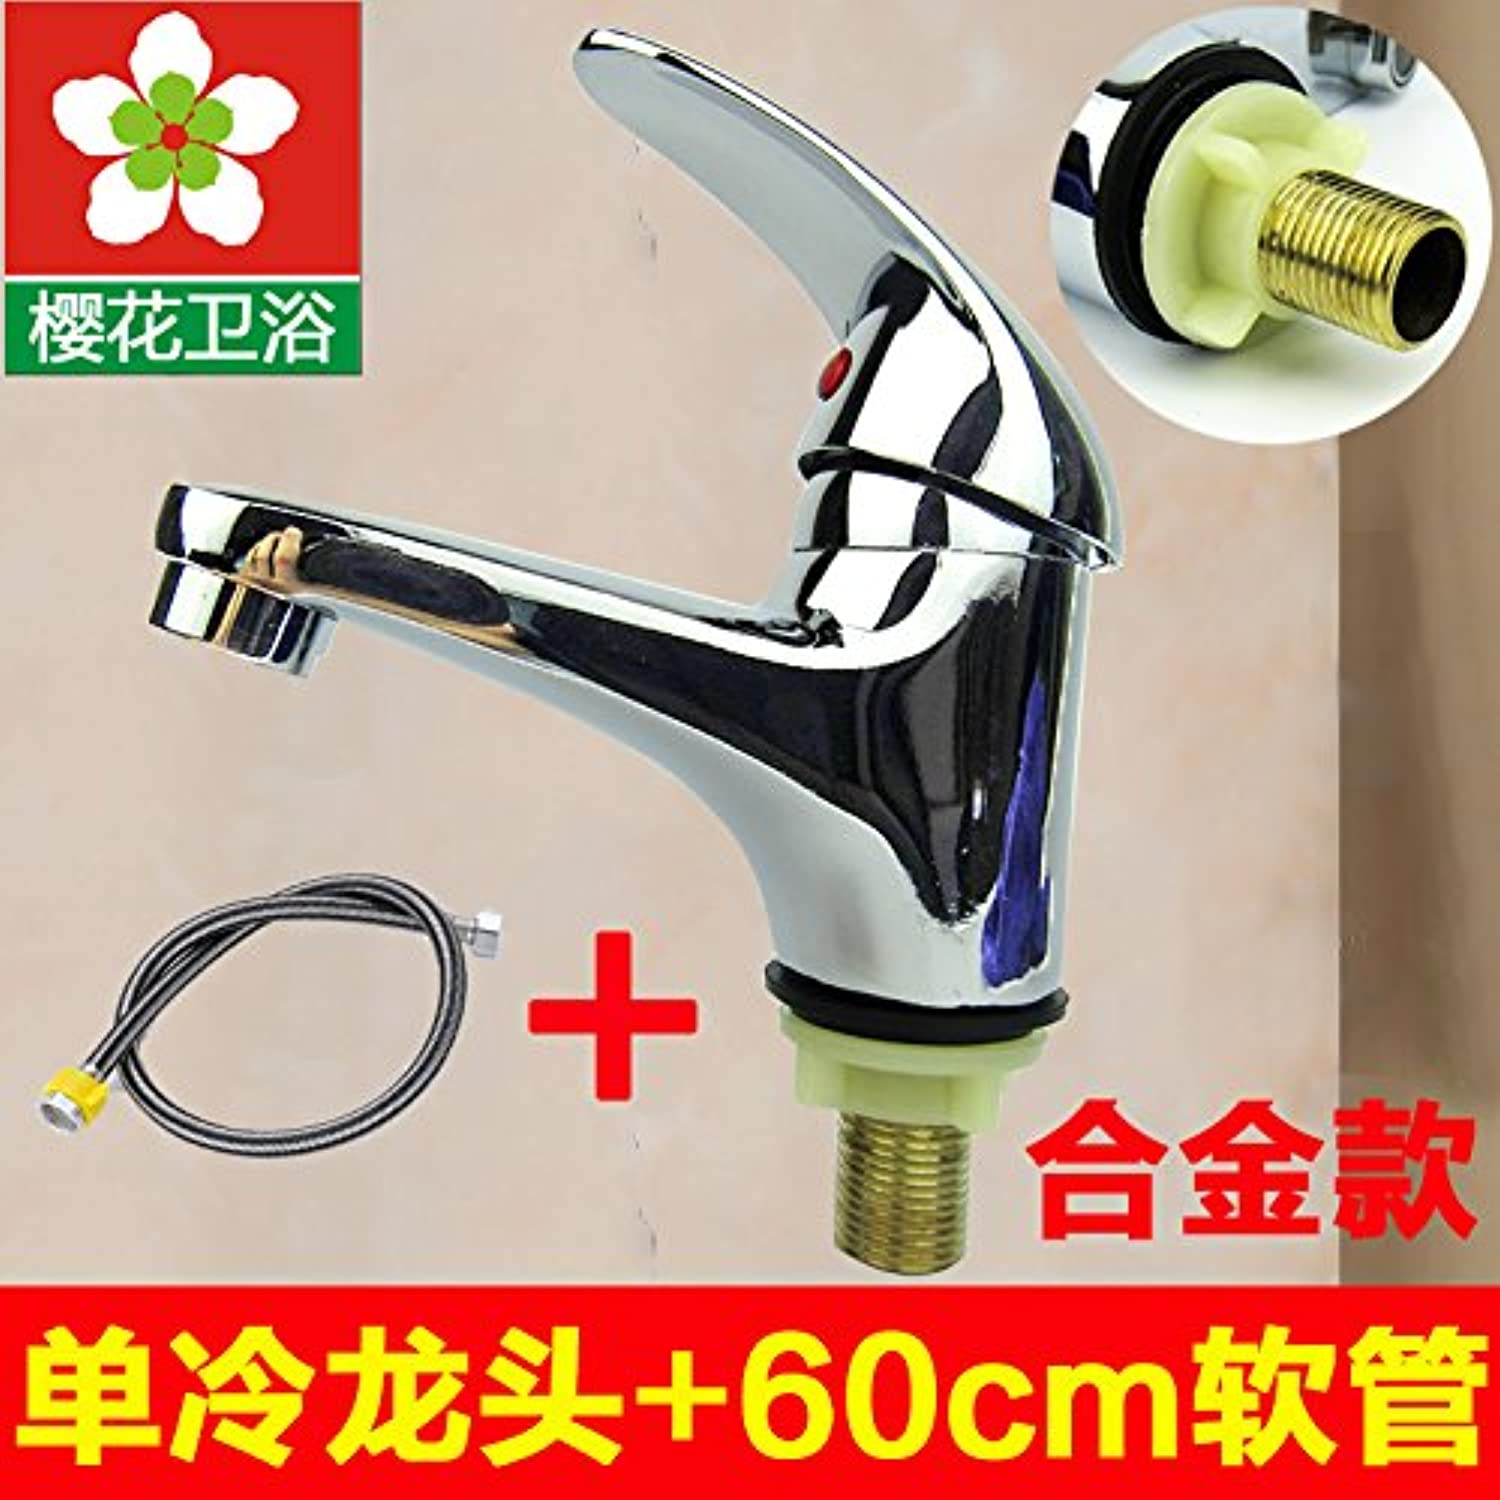 ETERNAL QUALITY Bathroom Sink Basin Tap Brass Mixer Tap Washroom Mixer Faucet The copper basin Sinks Faucets single hole Washbasin Faucet mixing valve cold water faucet a